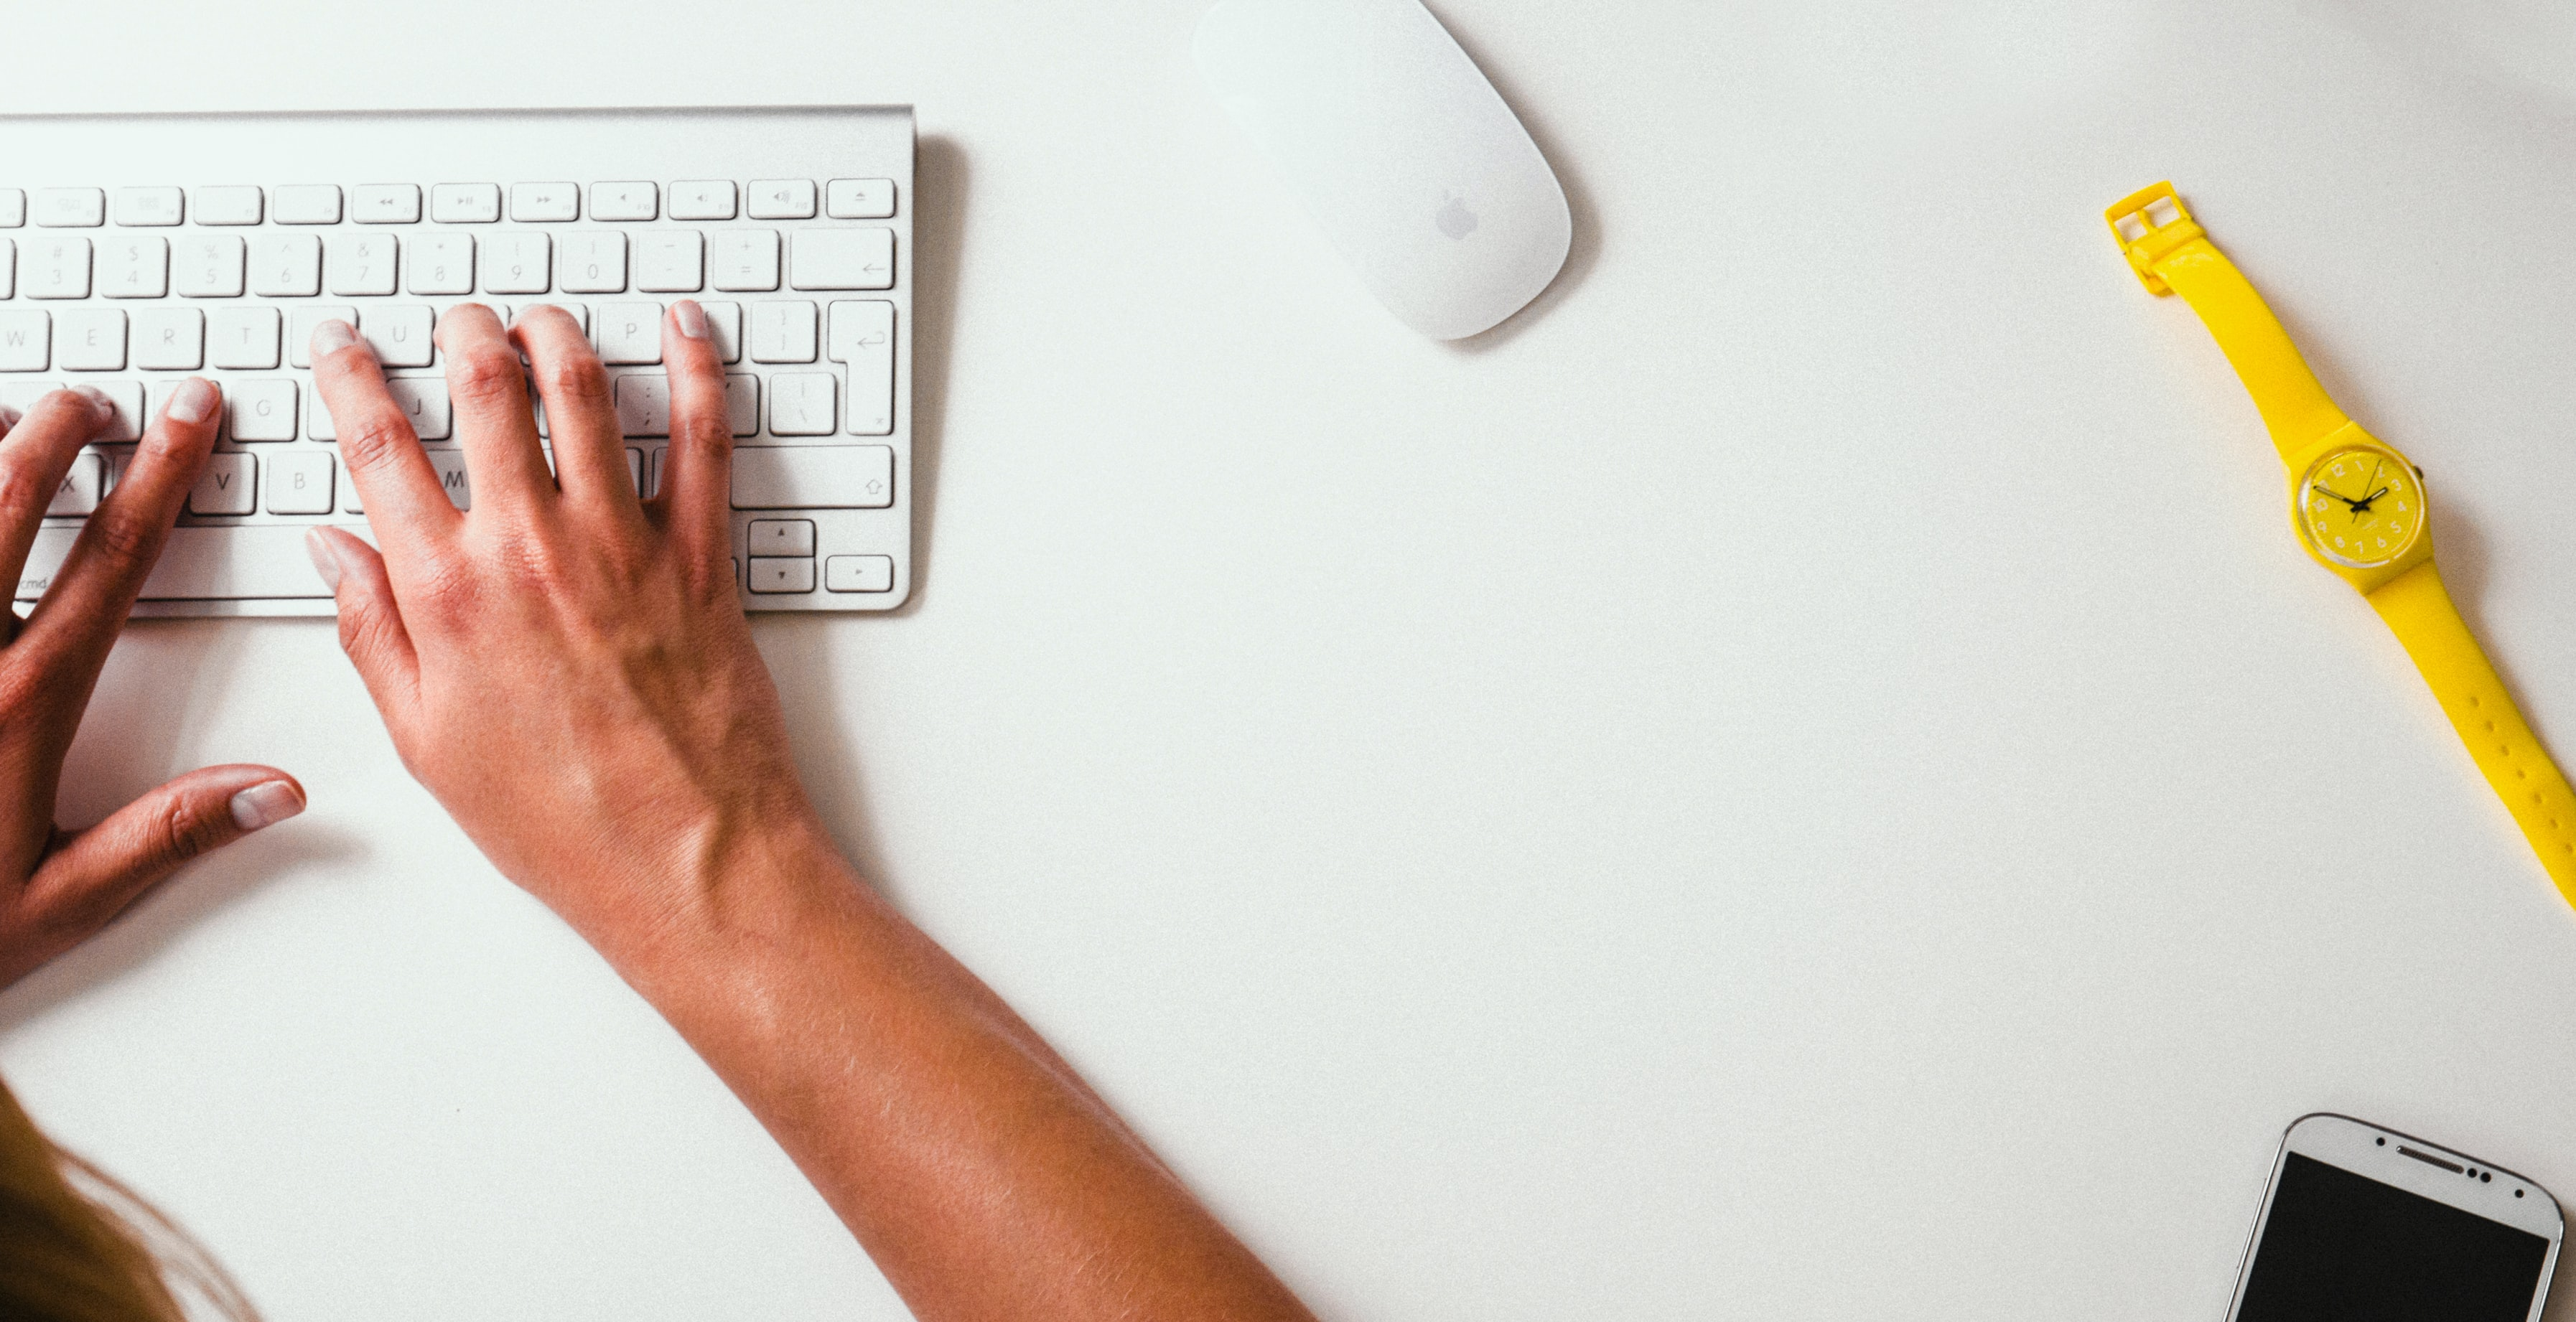 The hands of a designer typing on the keyboard connected to a computer in an office setting.